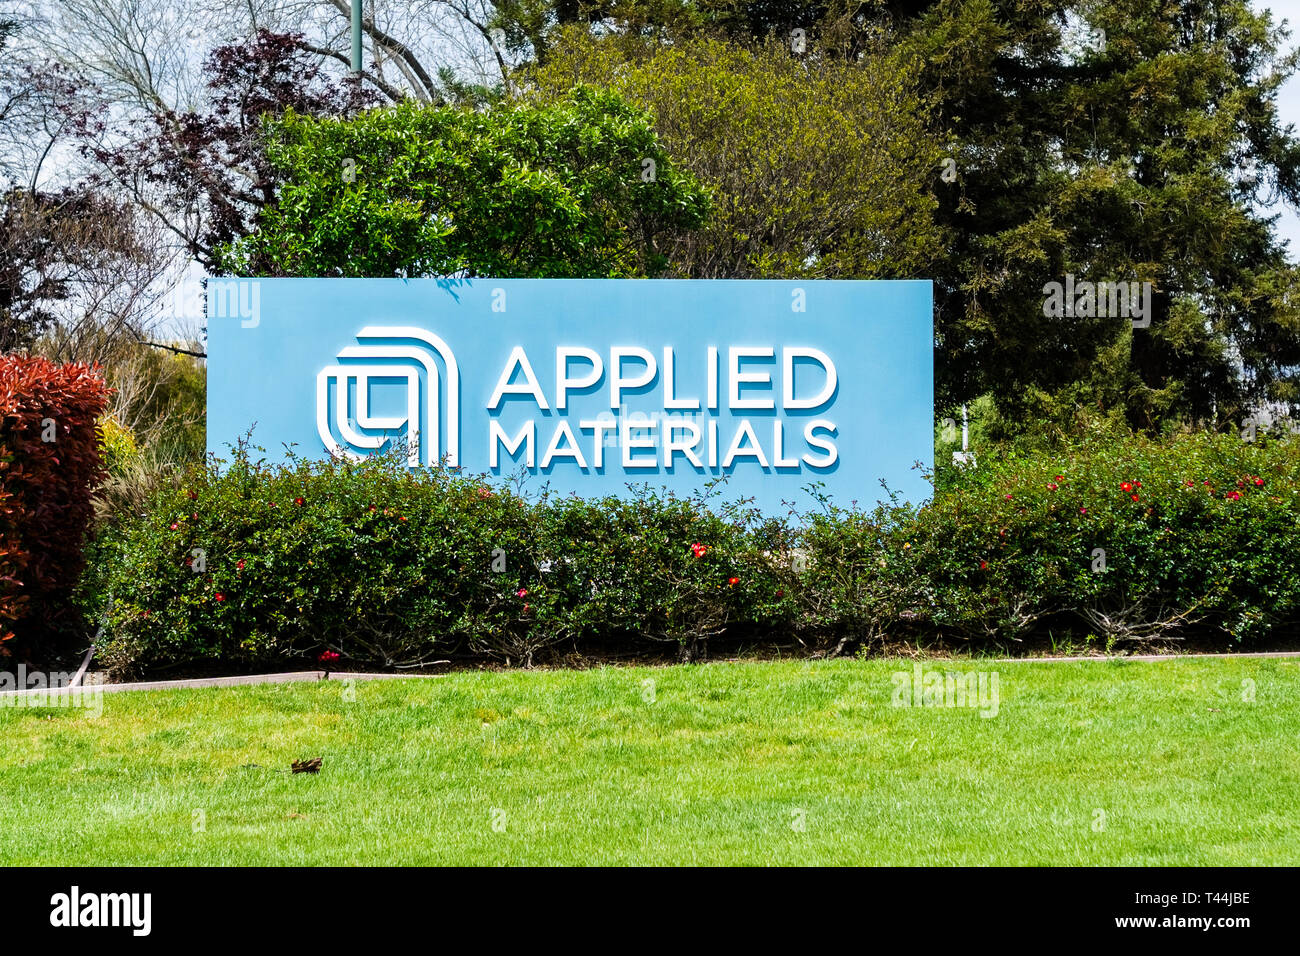 April 11, 2019 Santa Clara / CA / USA - Applied Materials sign posted at the entrance to the Company's campus in Silicon Valley, South San Francisco b Stock Photo